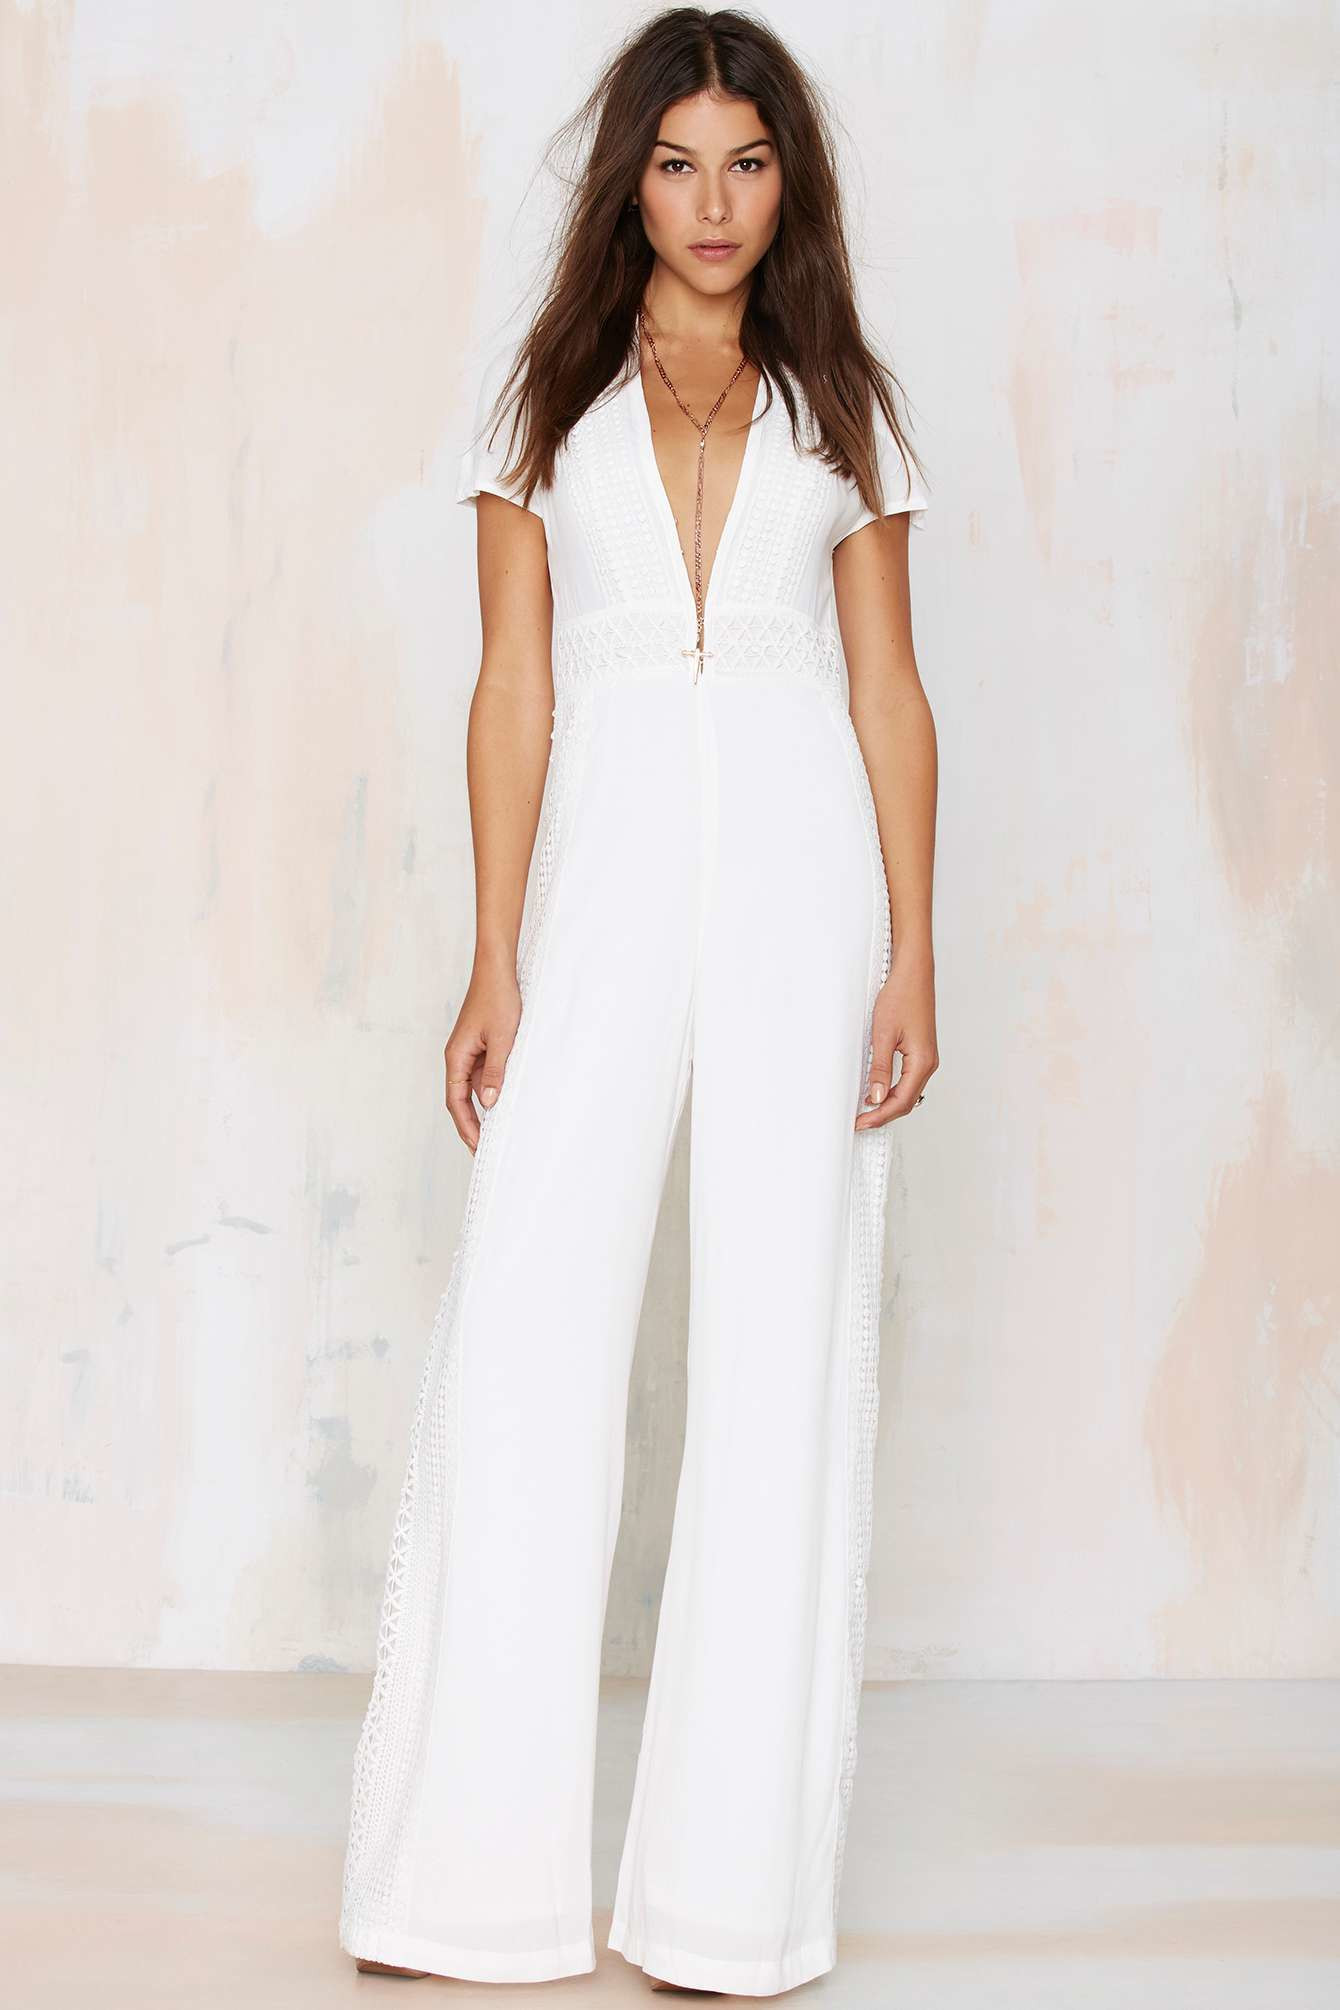 Crochet Jumpsuit Inspirational Nasty Gal Wayward Stun Crochet Jumpsuit White In White Of Amazing 49 Pictures Crochet Jumpsuit